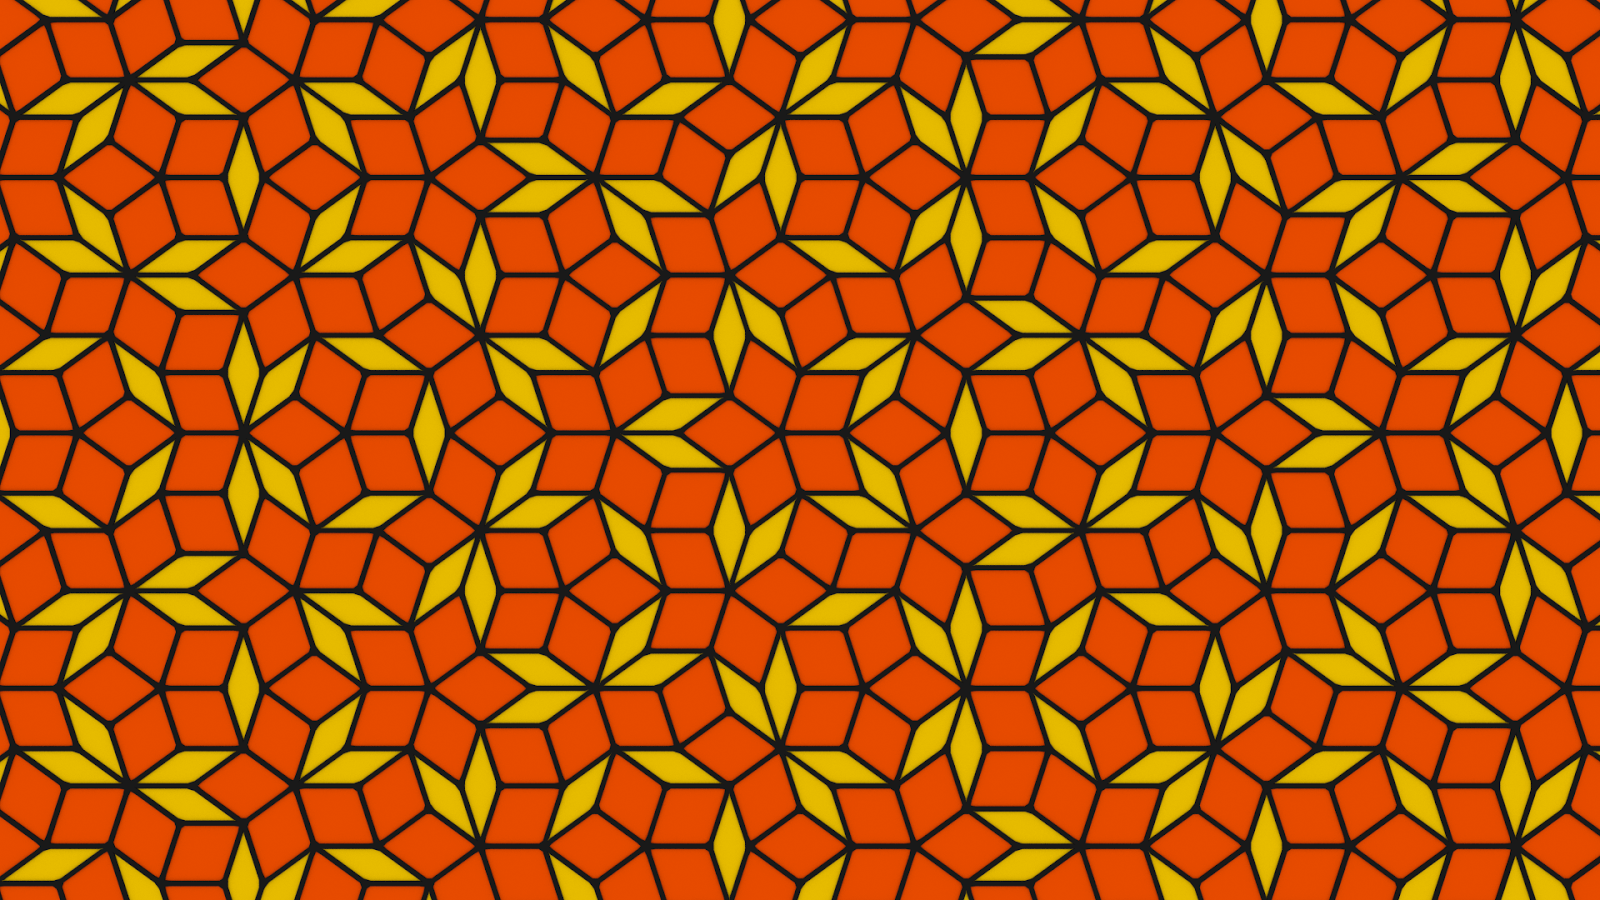 download From SPACE Tutorial Penrose Tiling in Blender 1600x900